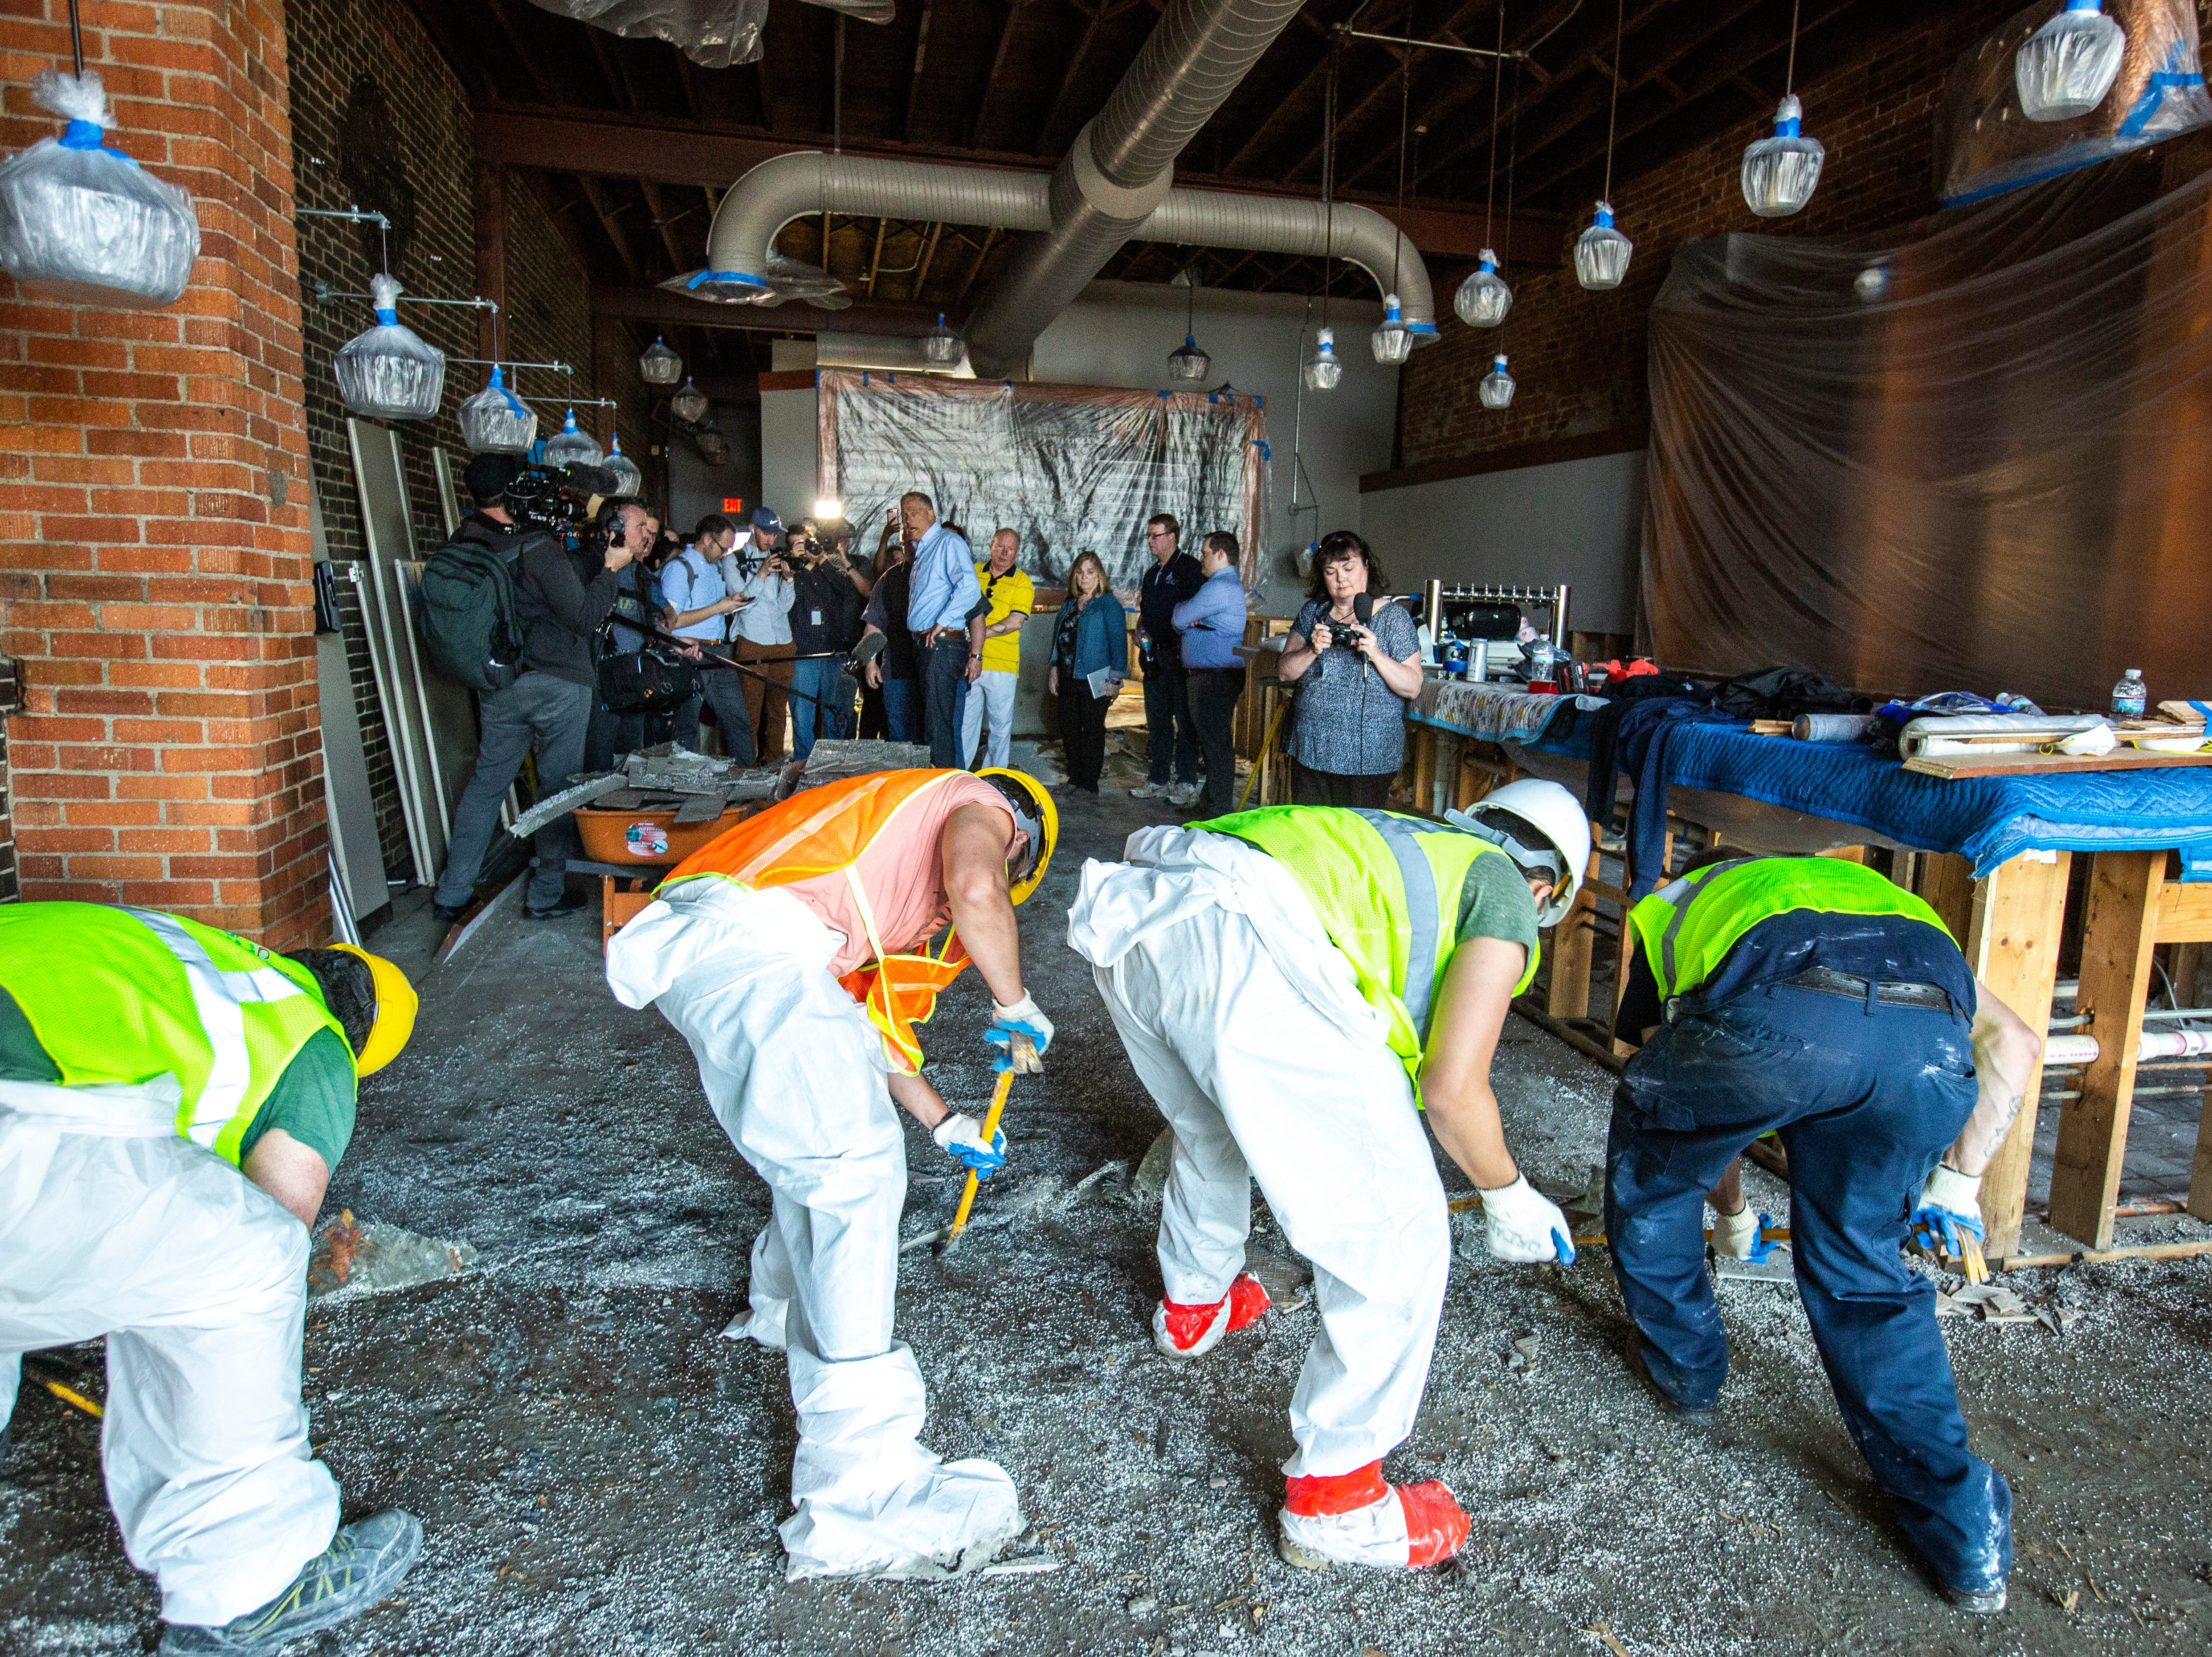 Washington Gov. Jay Inslee tours areas impacted by floodwaters while workers chip away at a subfloor, Wednesday, May 15, 2019, inside Front Street Brewery in downtown Davenport, Iowa.